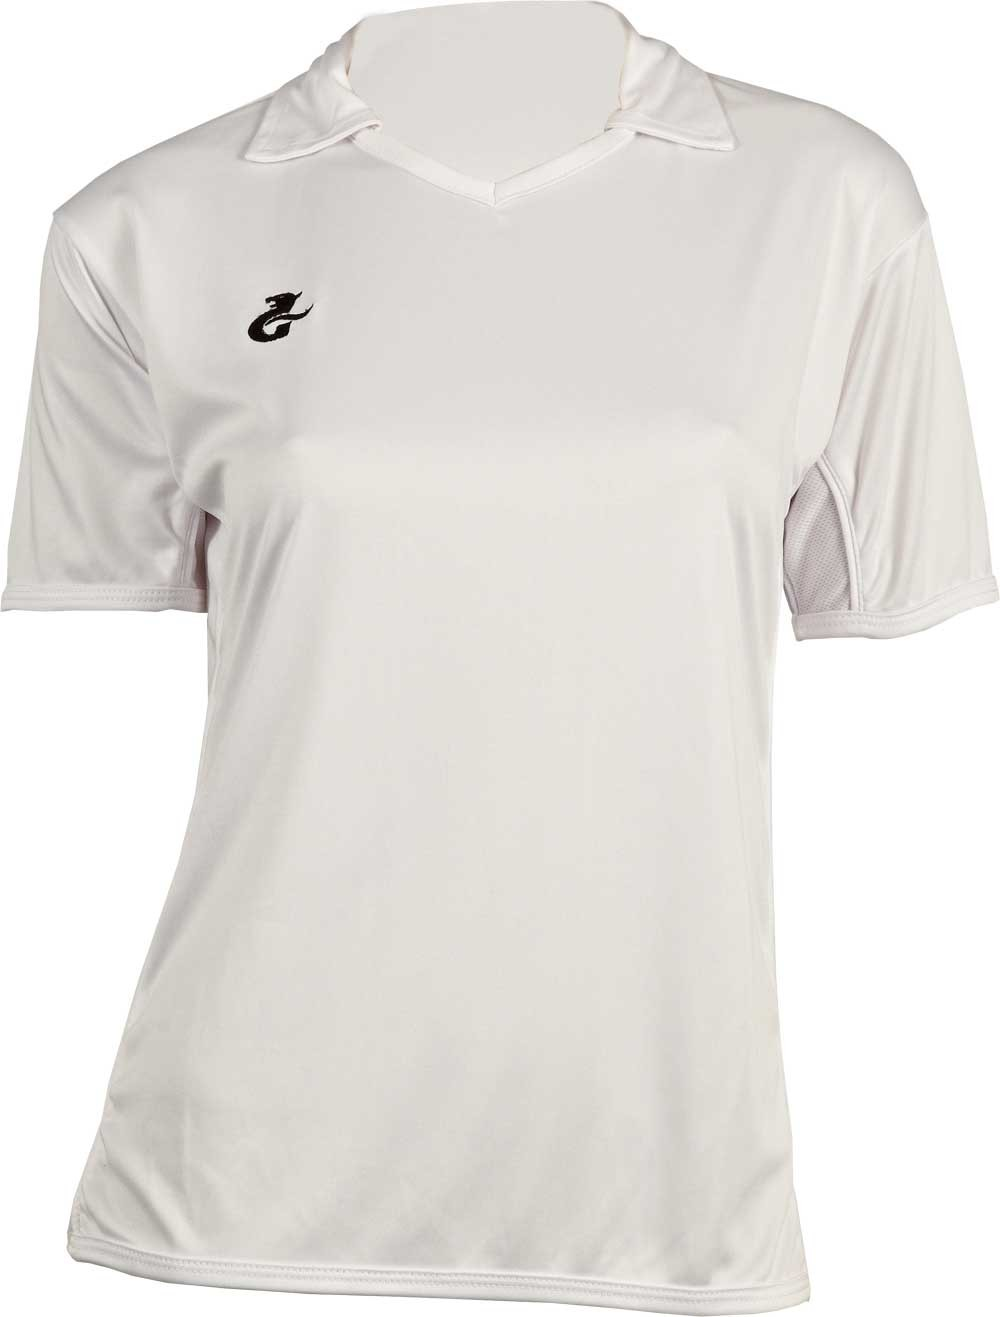 Gryphon Womens Essential Collared Playing Shirt